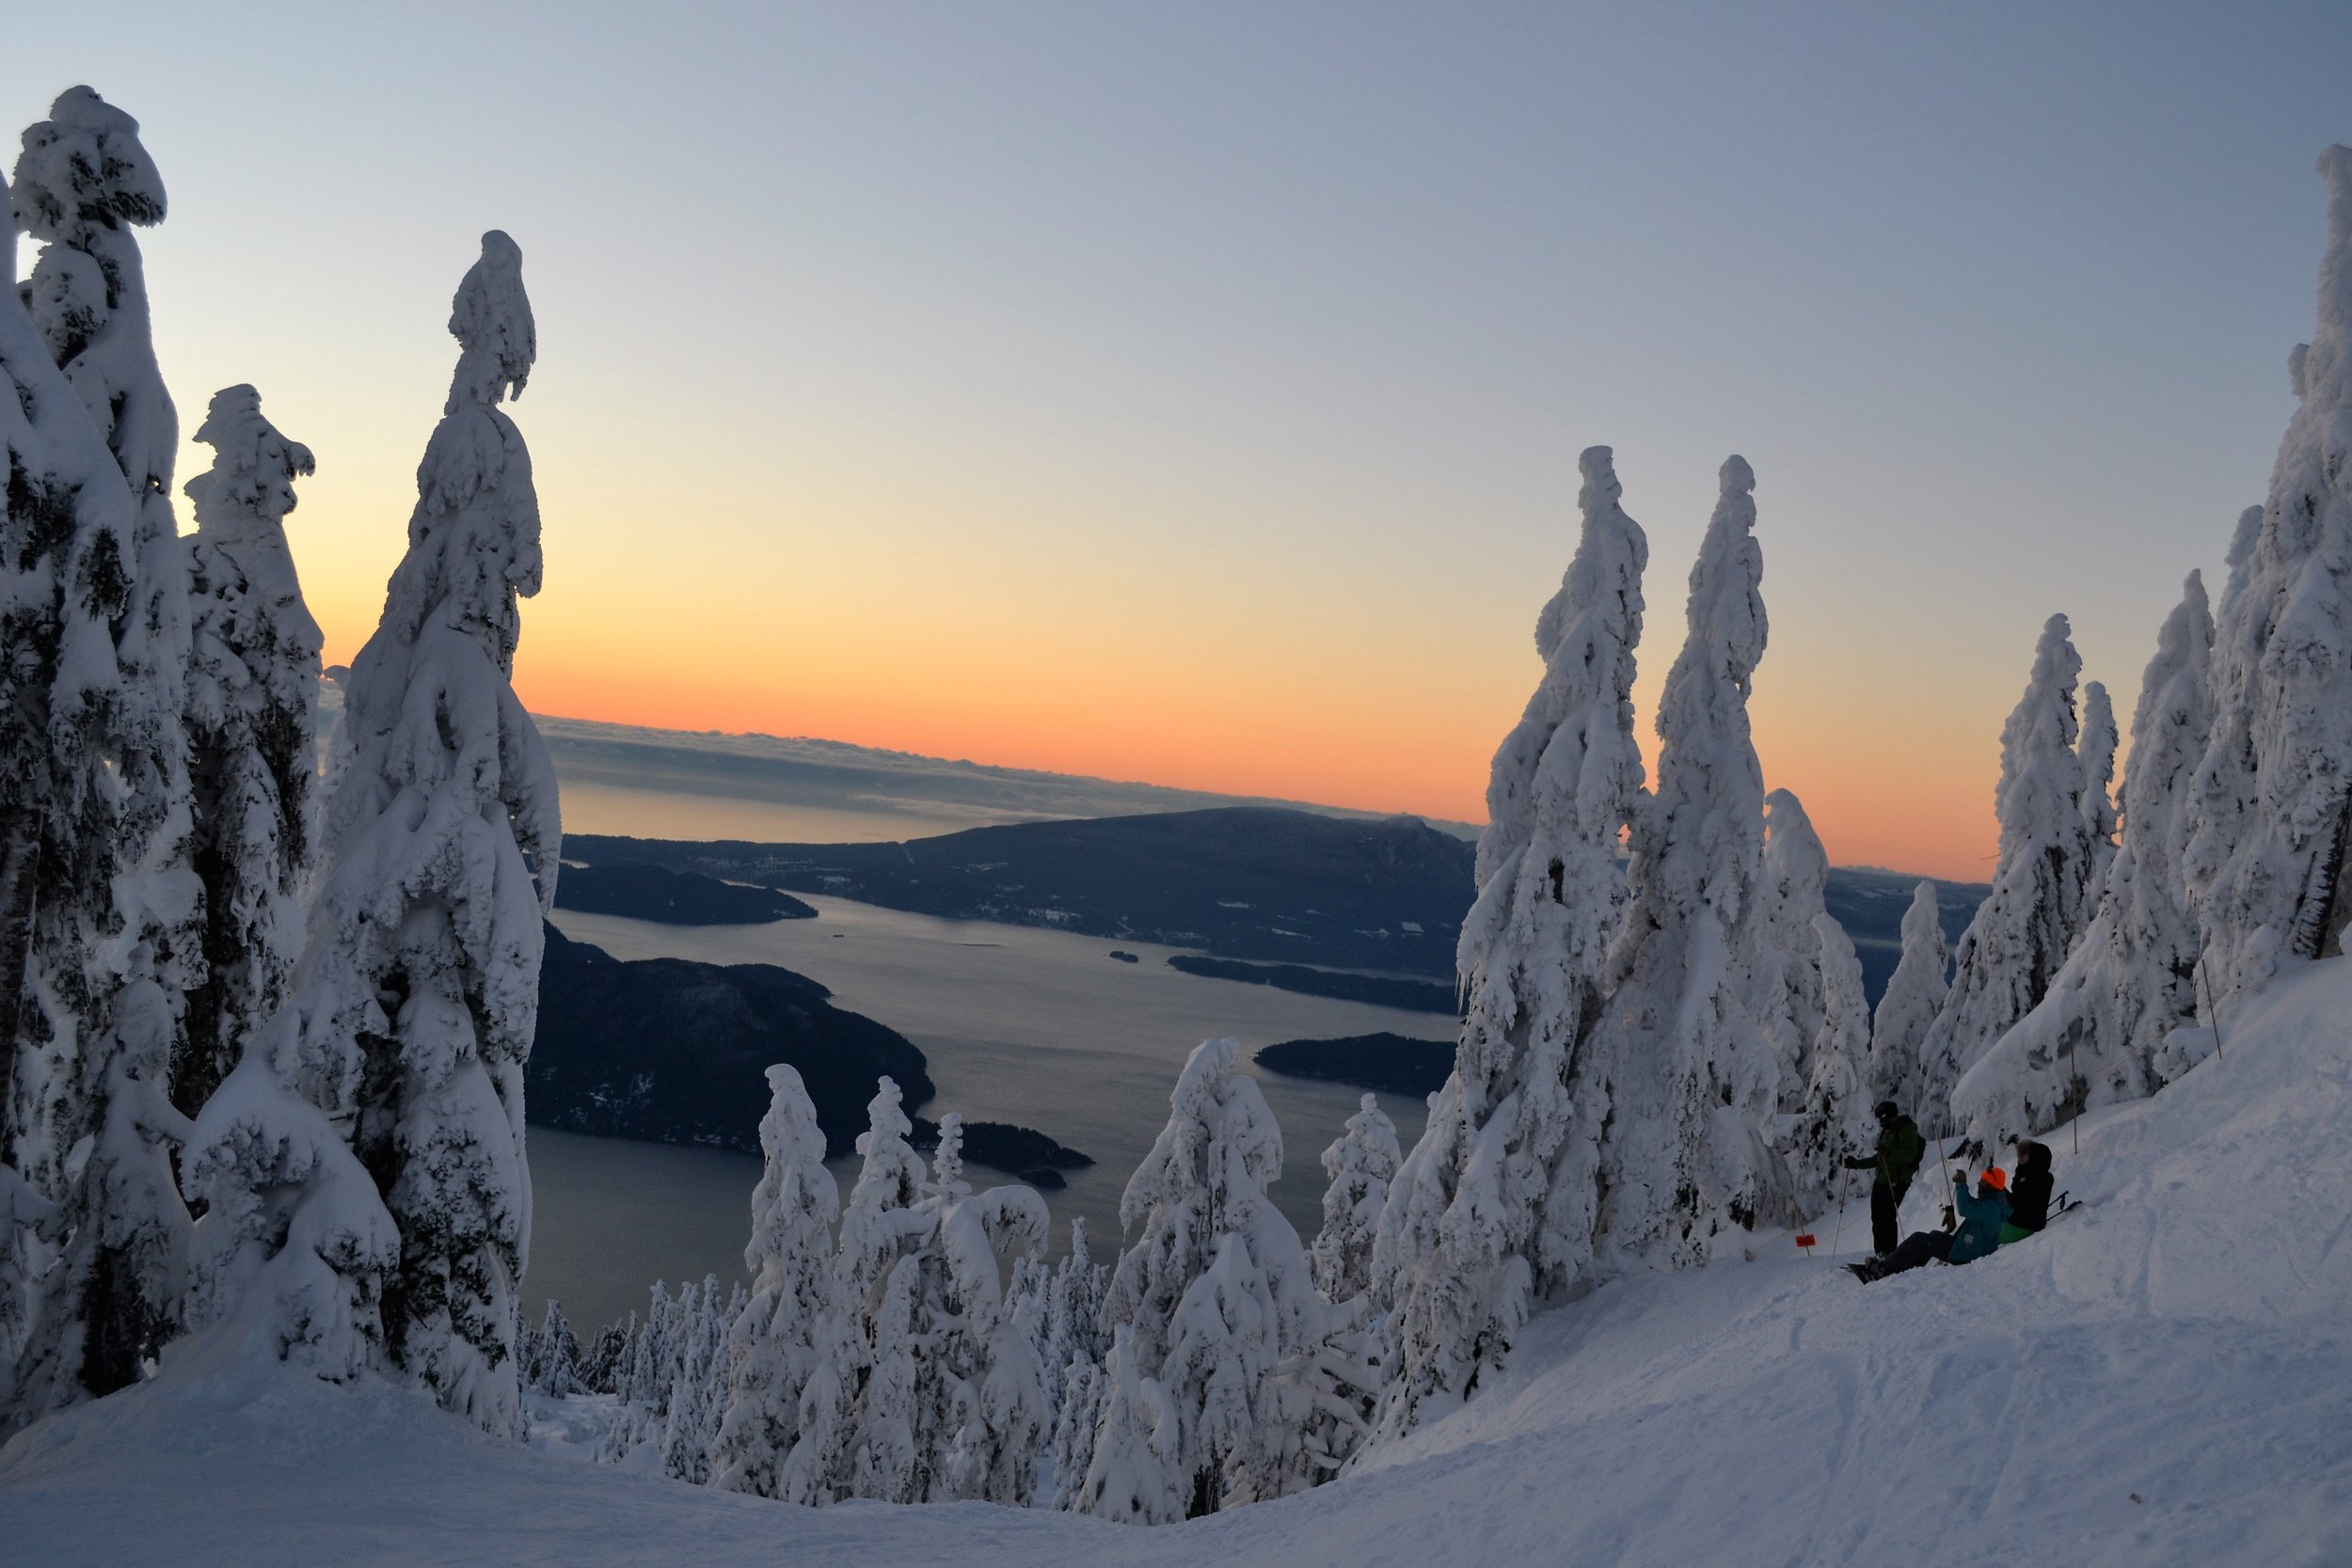 Snowboarders relaxing during sunset in Vancouver